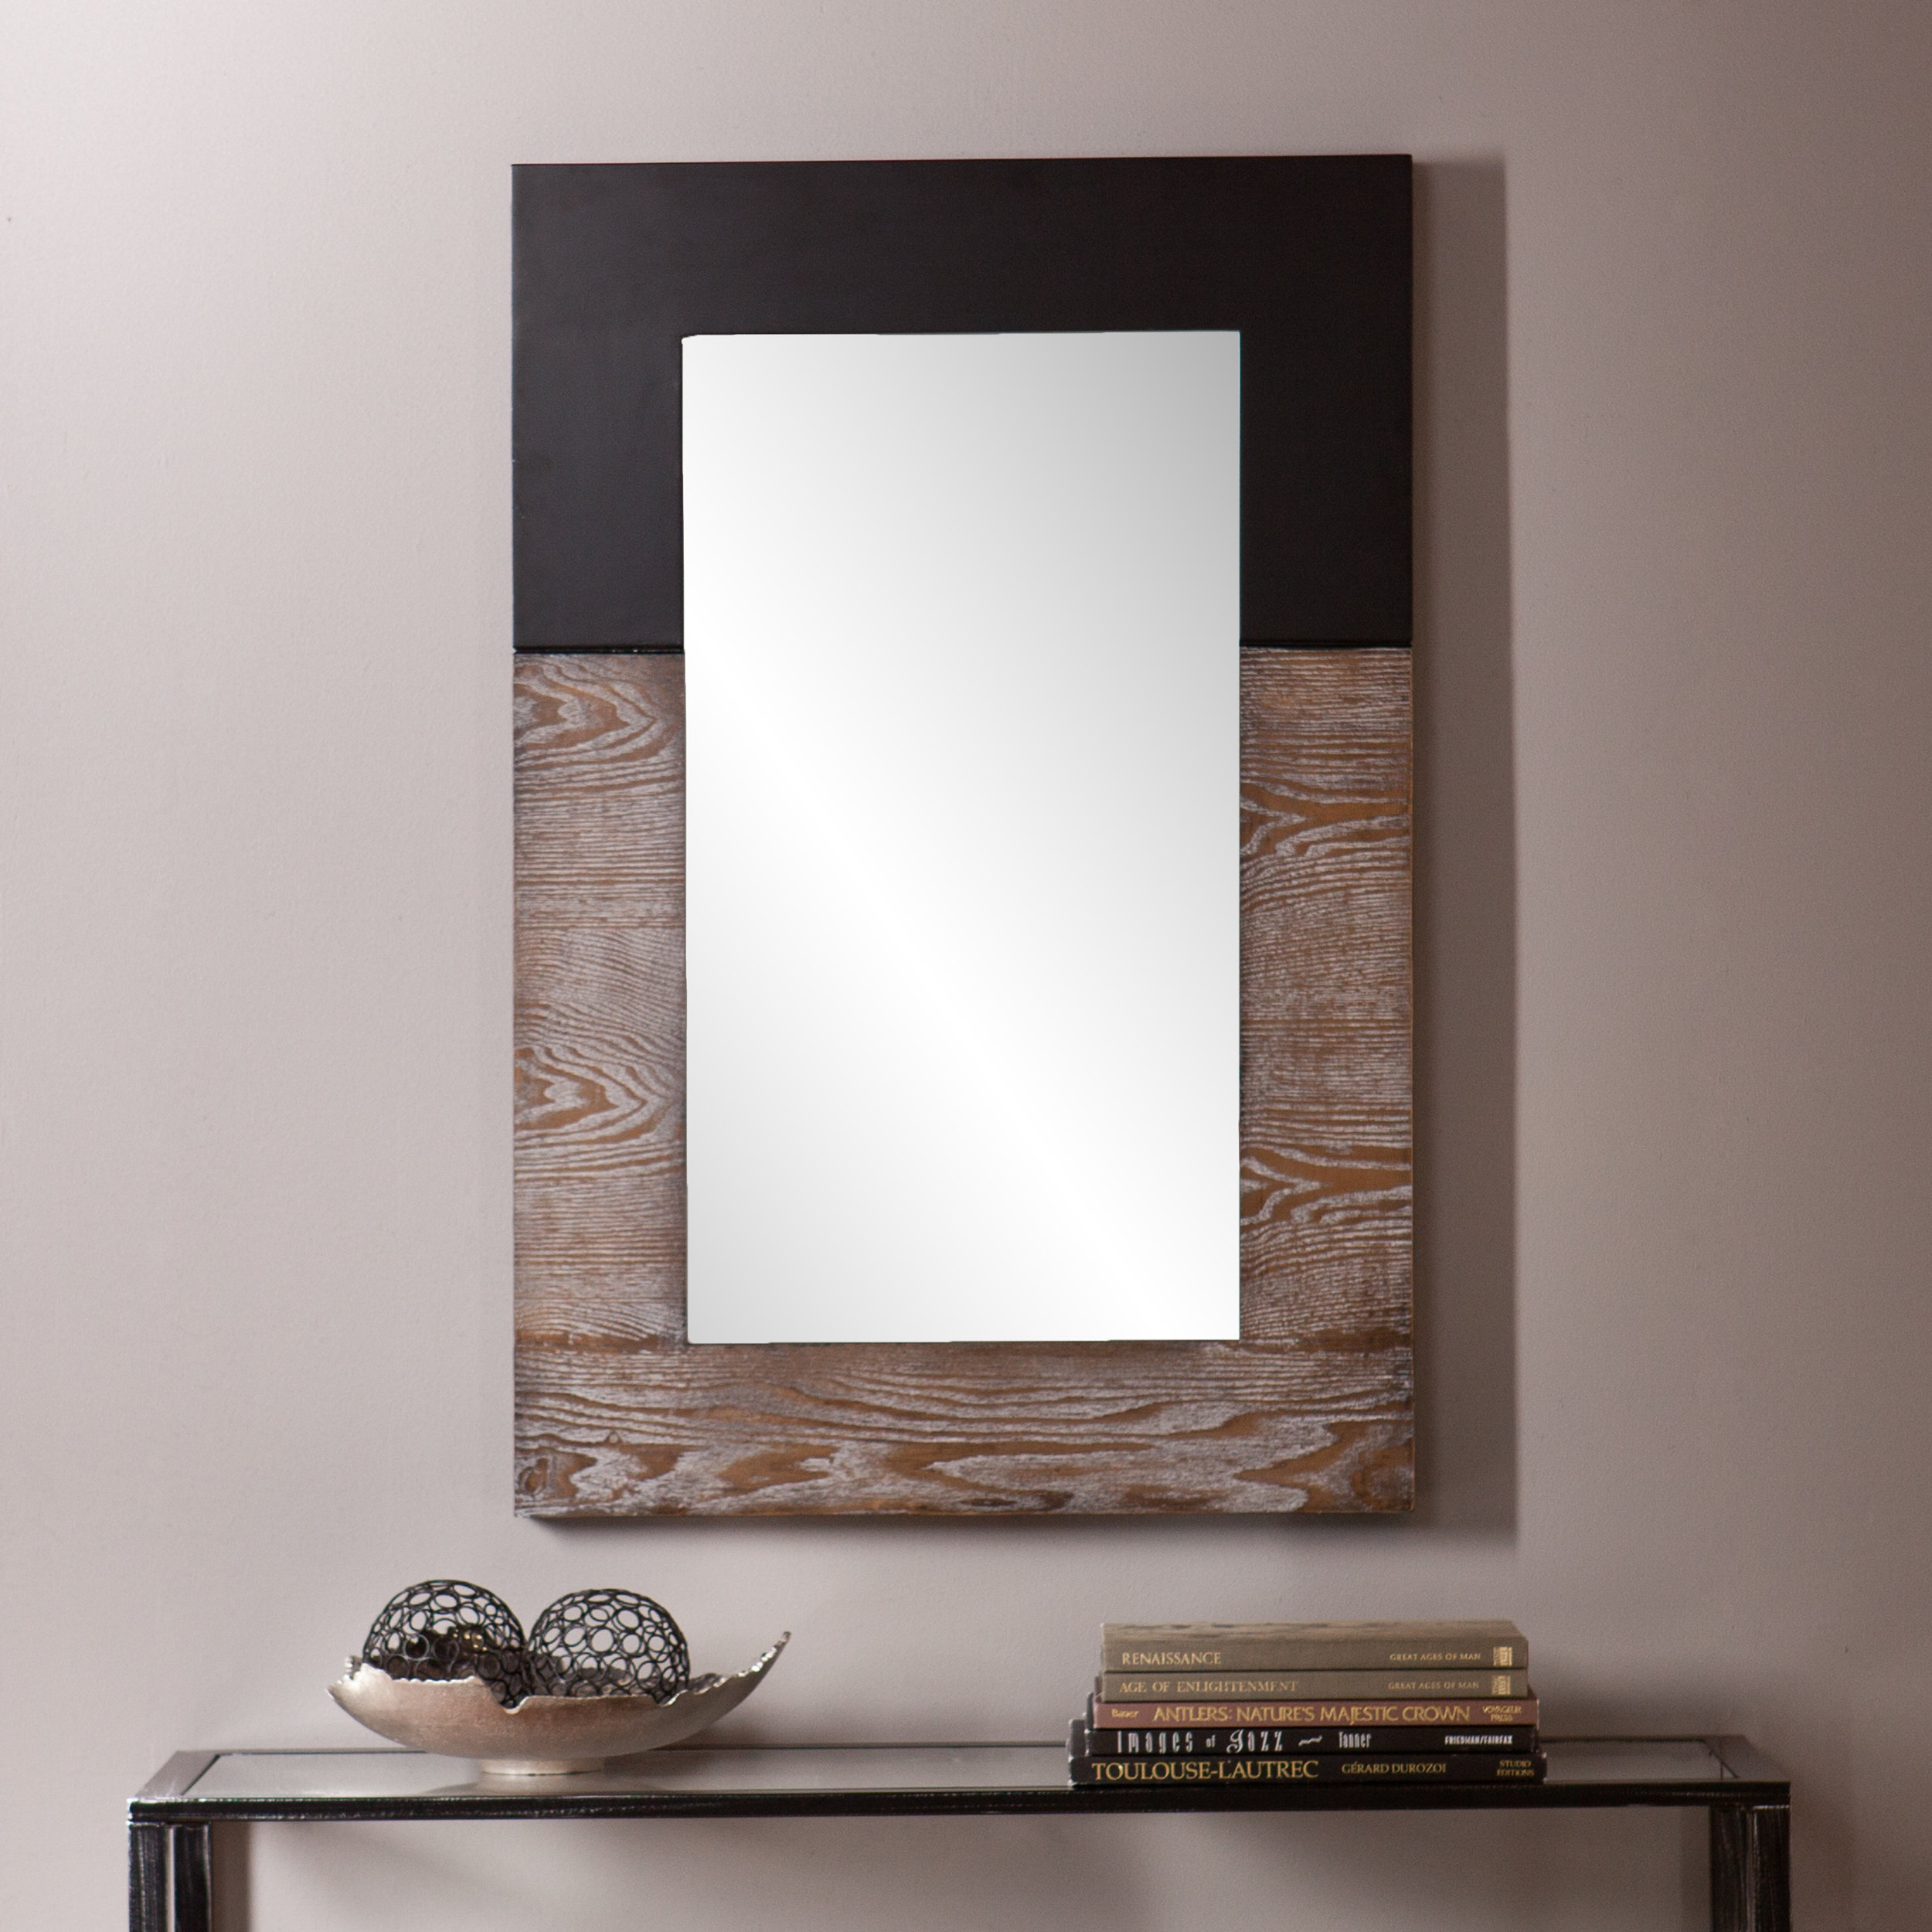 Farmhouse & Rustic Trent Austin Design Wall & Accent Mirrors Inside Berinhard Accent Mirrors (View 15 of 20)